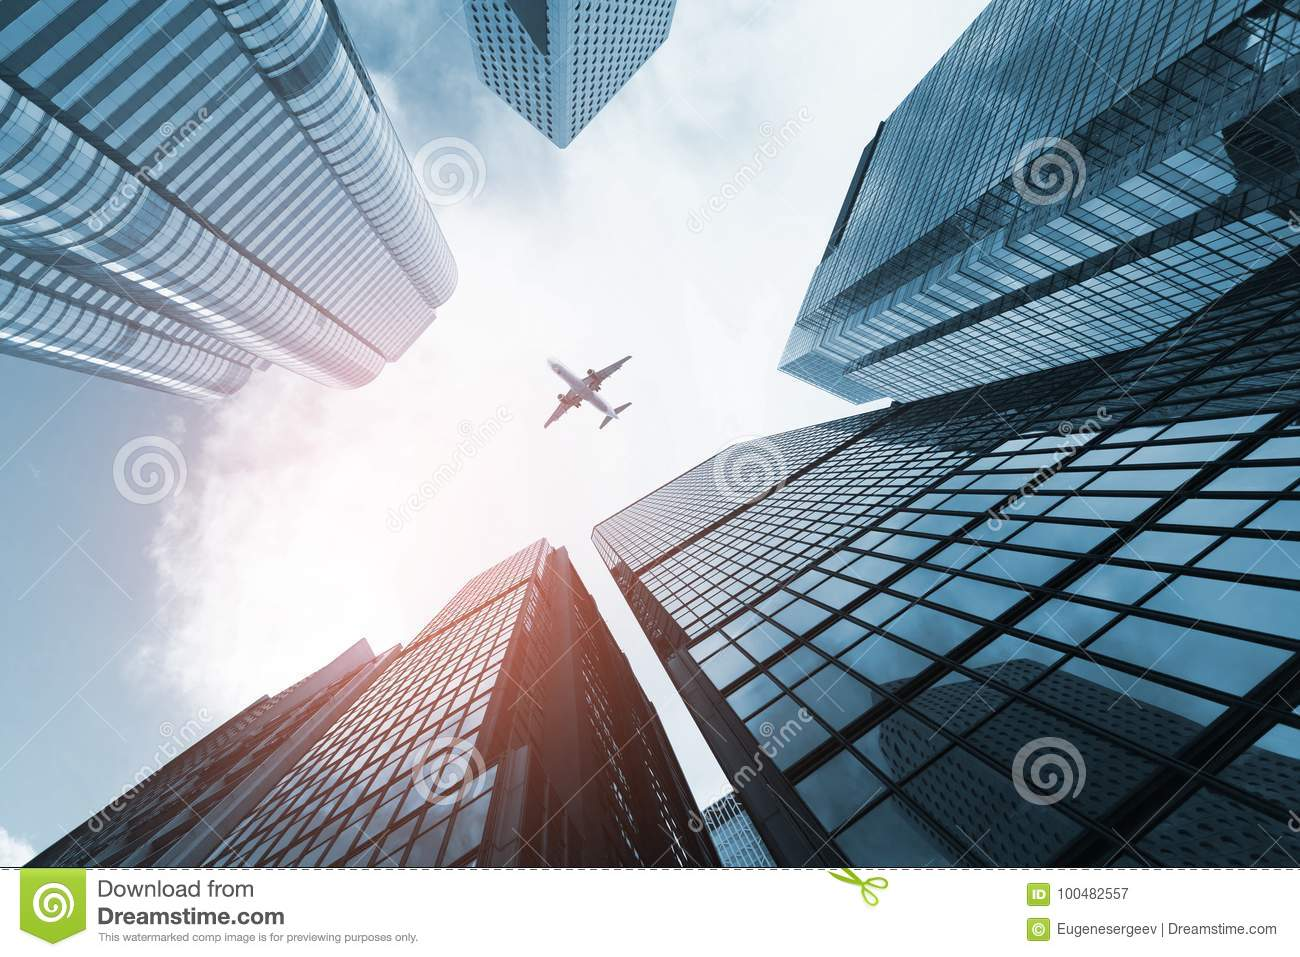 Plane flying over business skyscrapers